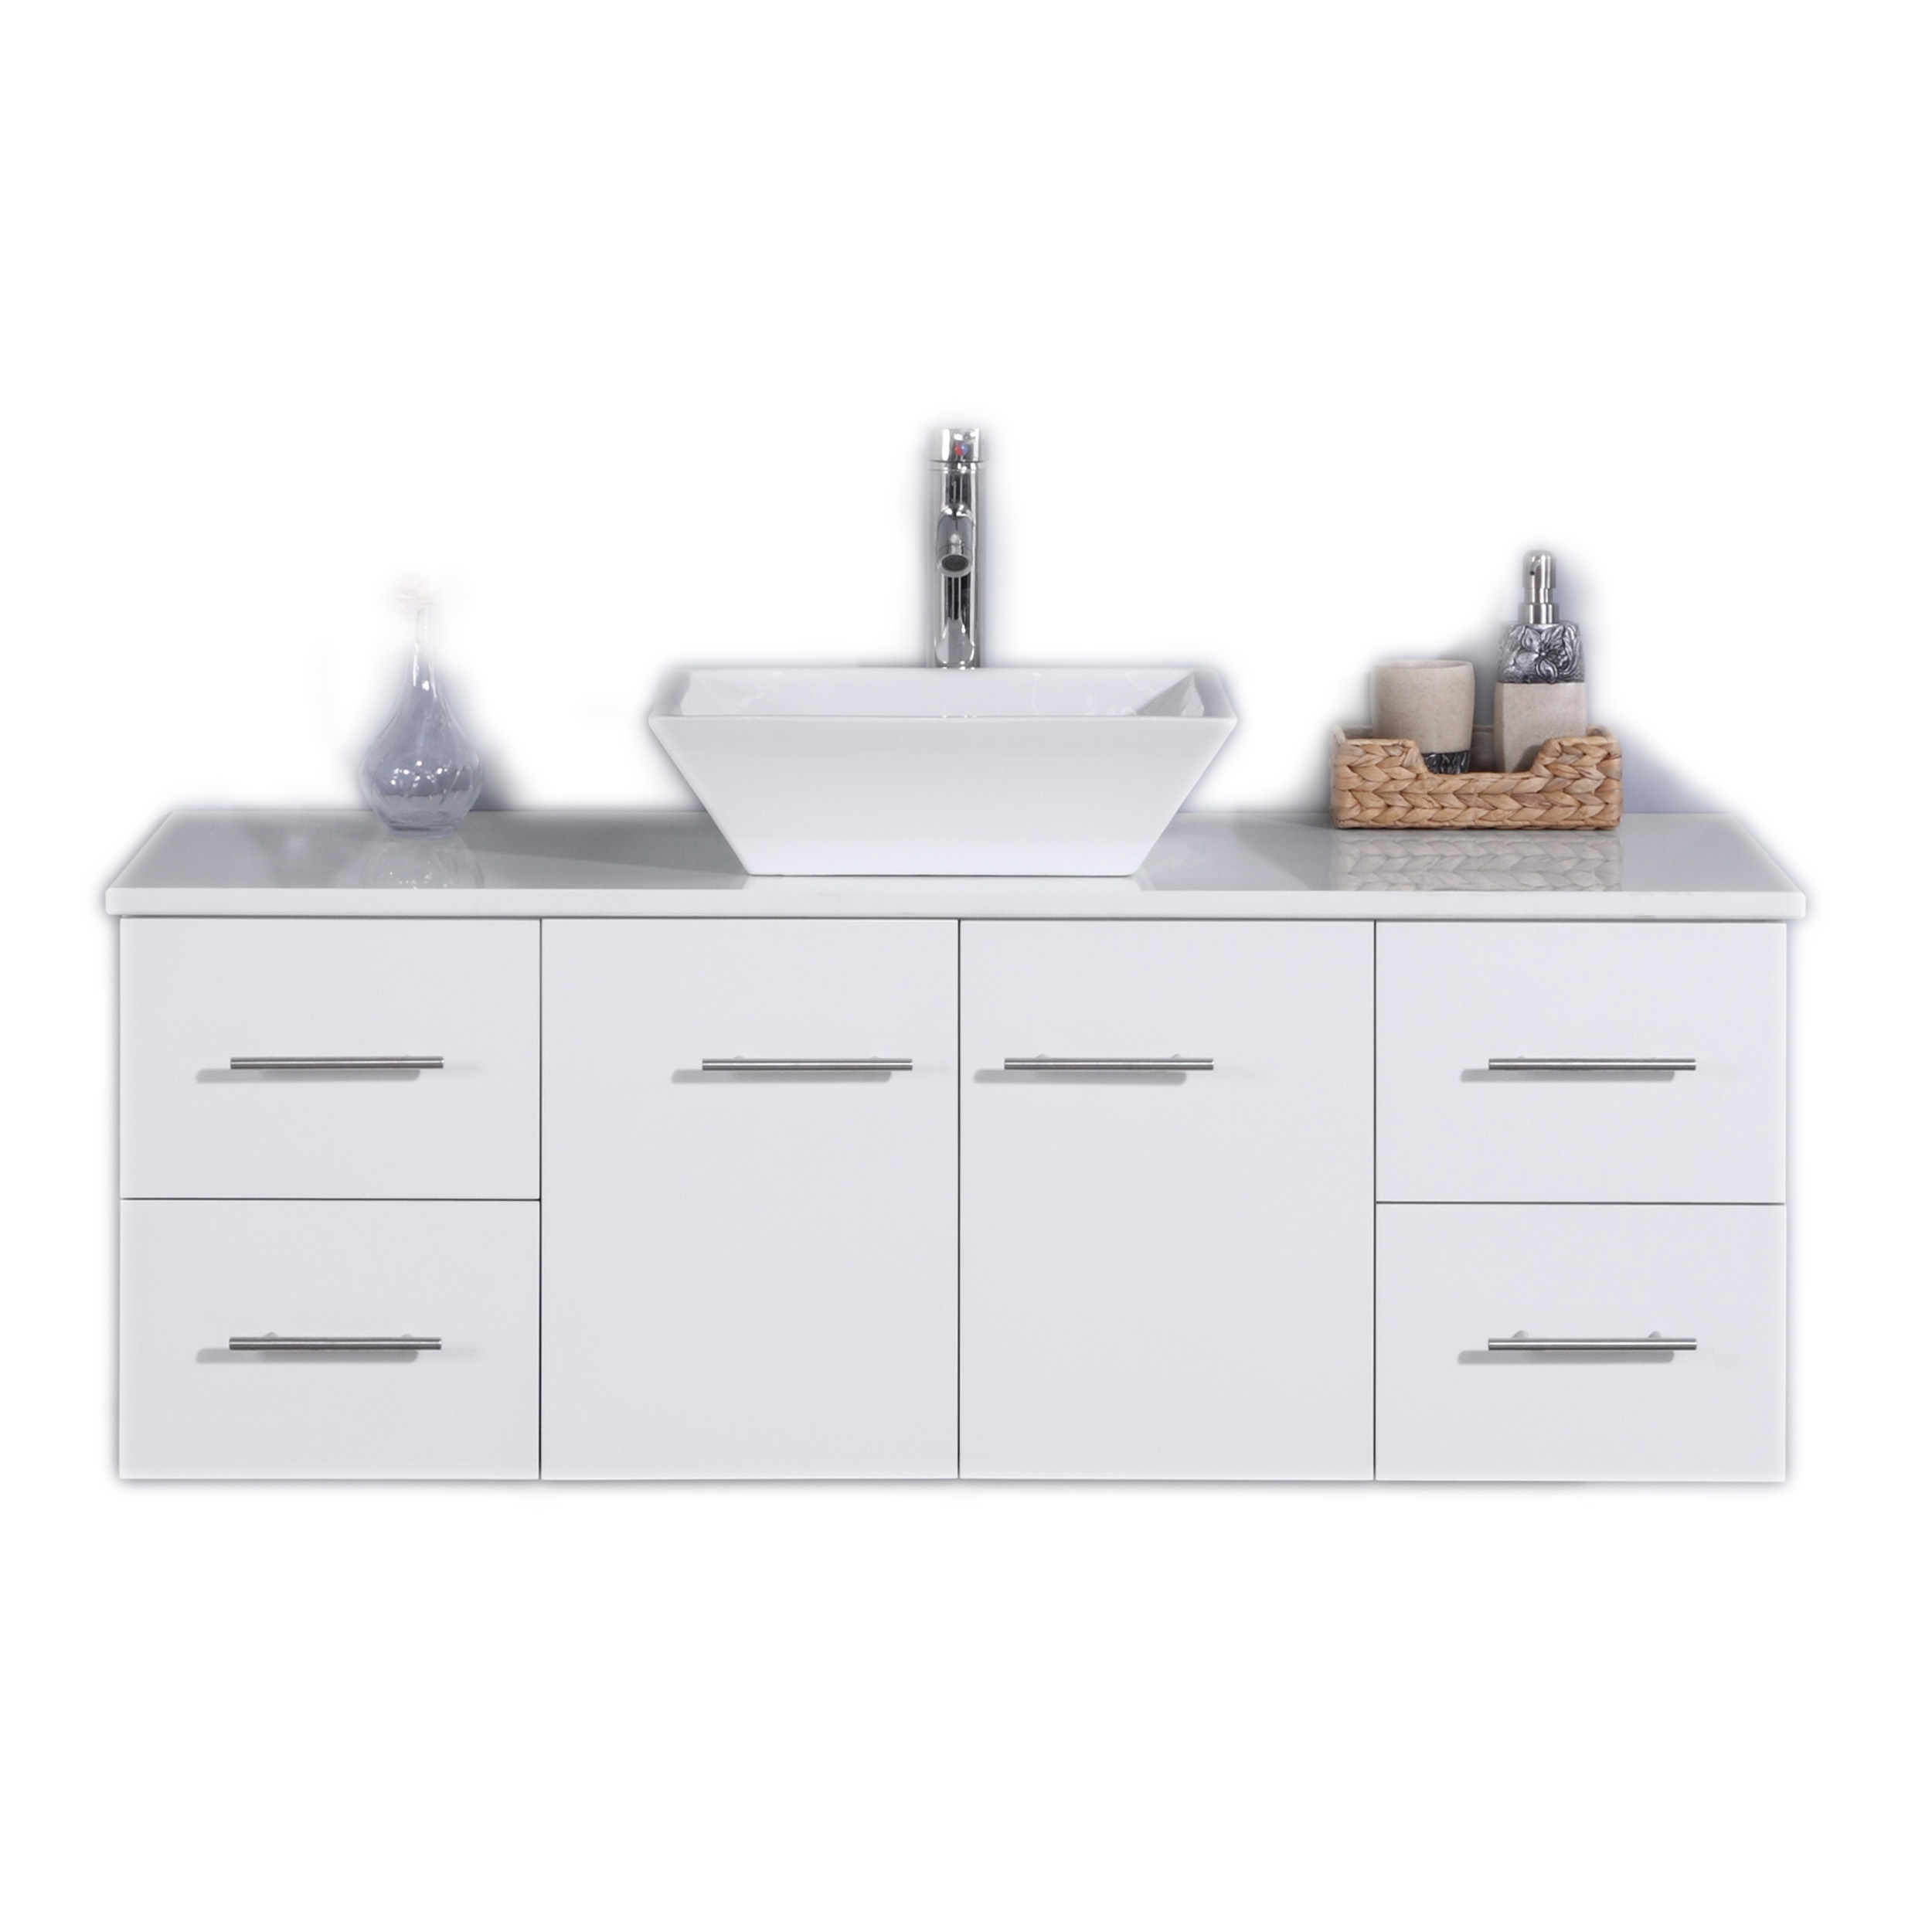 bathrooms and tops bamboo with sink lowes winsome native carrara highgrove top white right granite bathroom vanity on canada marble side faucet timber trails inch oak